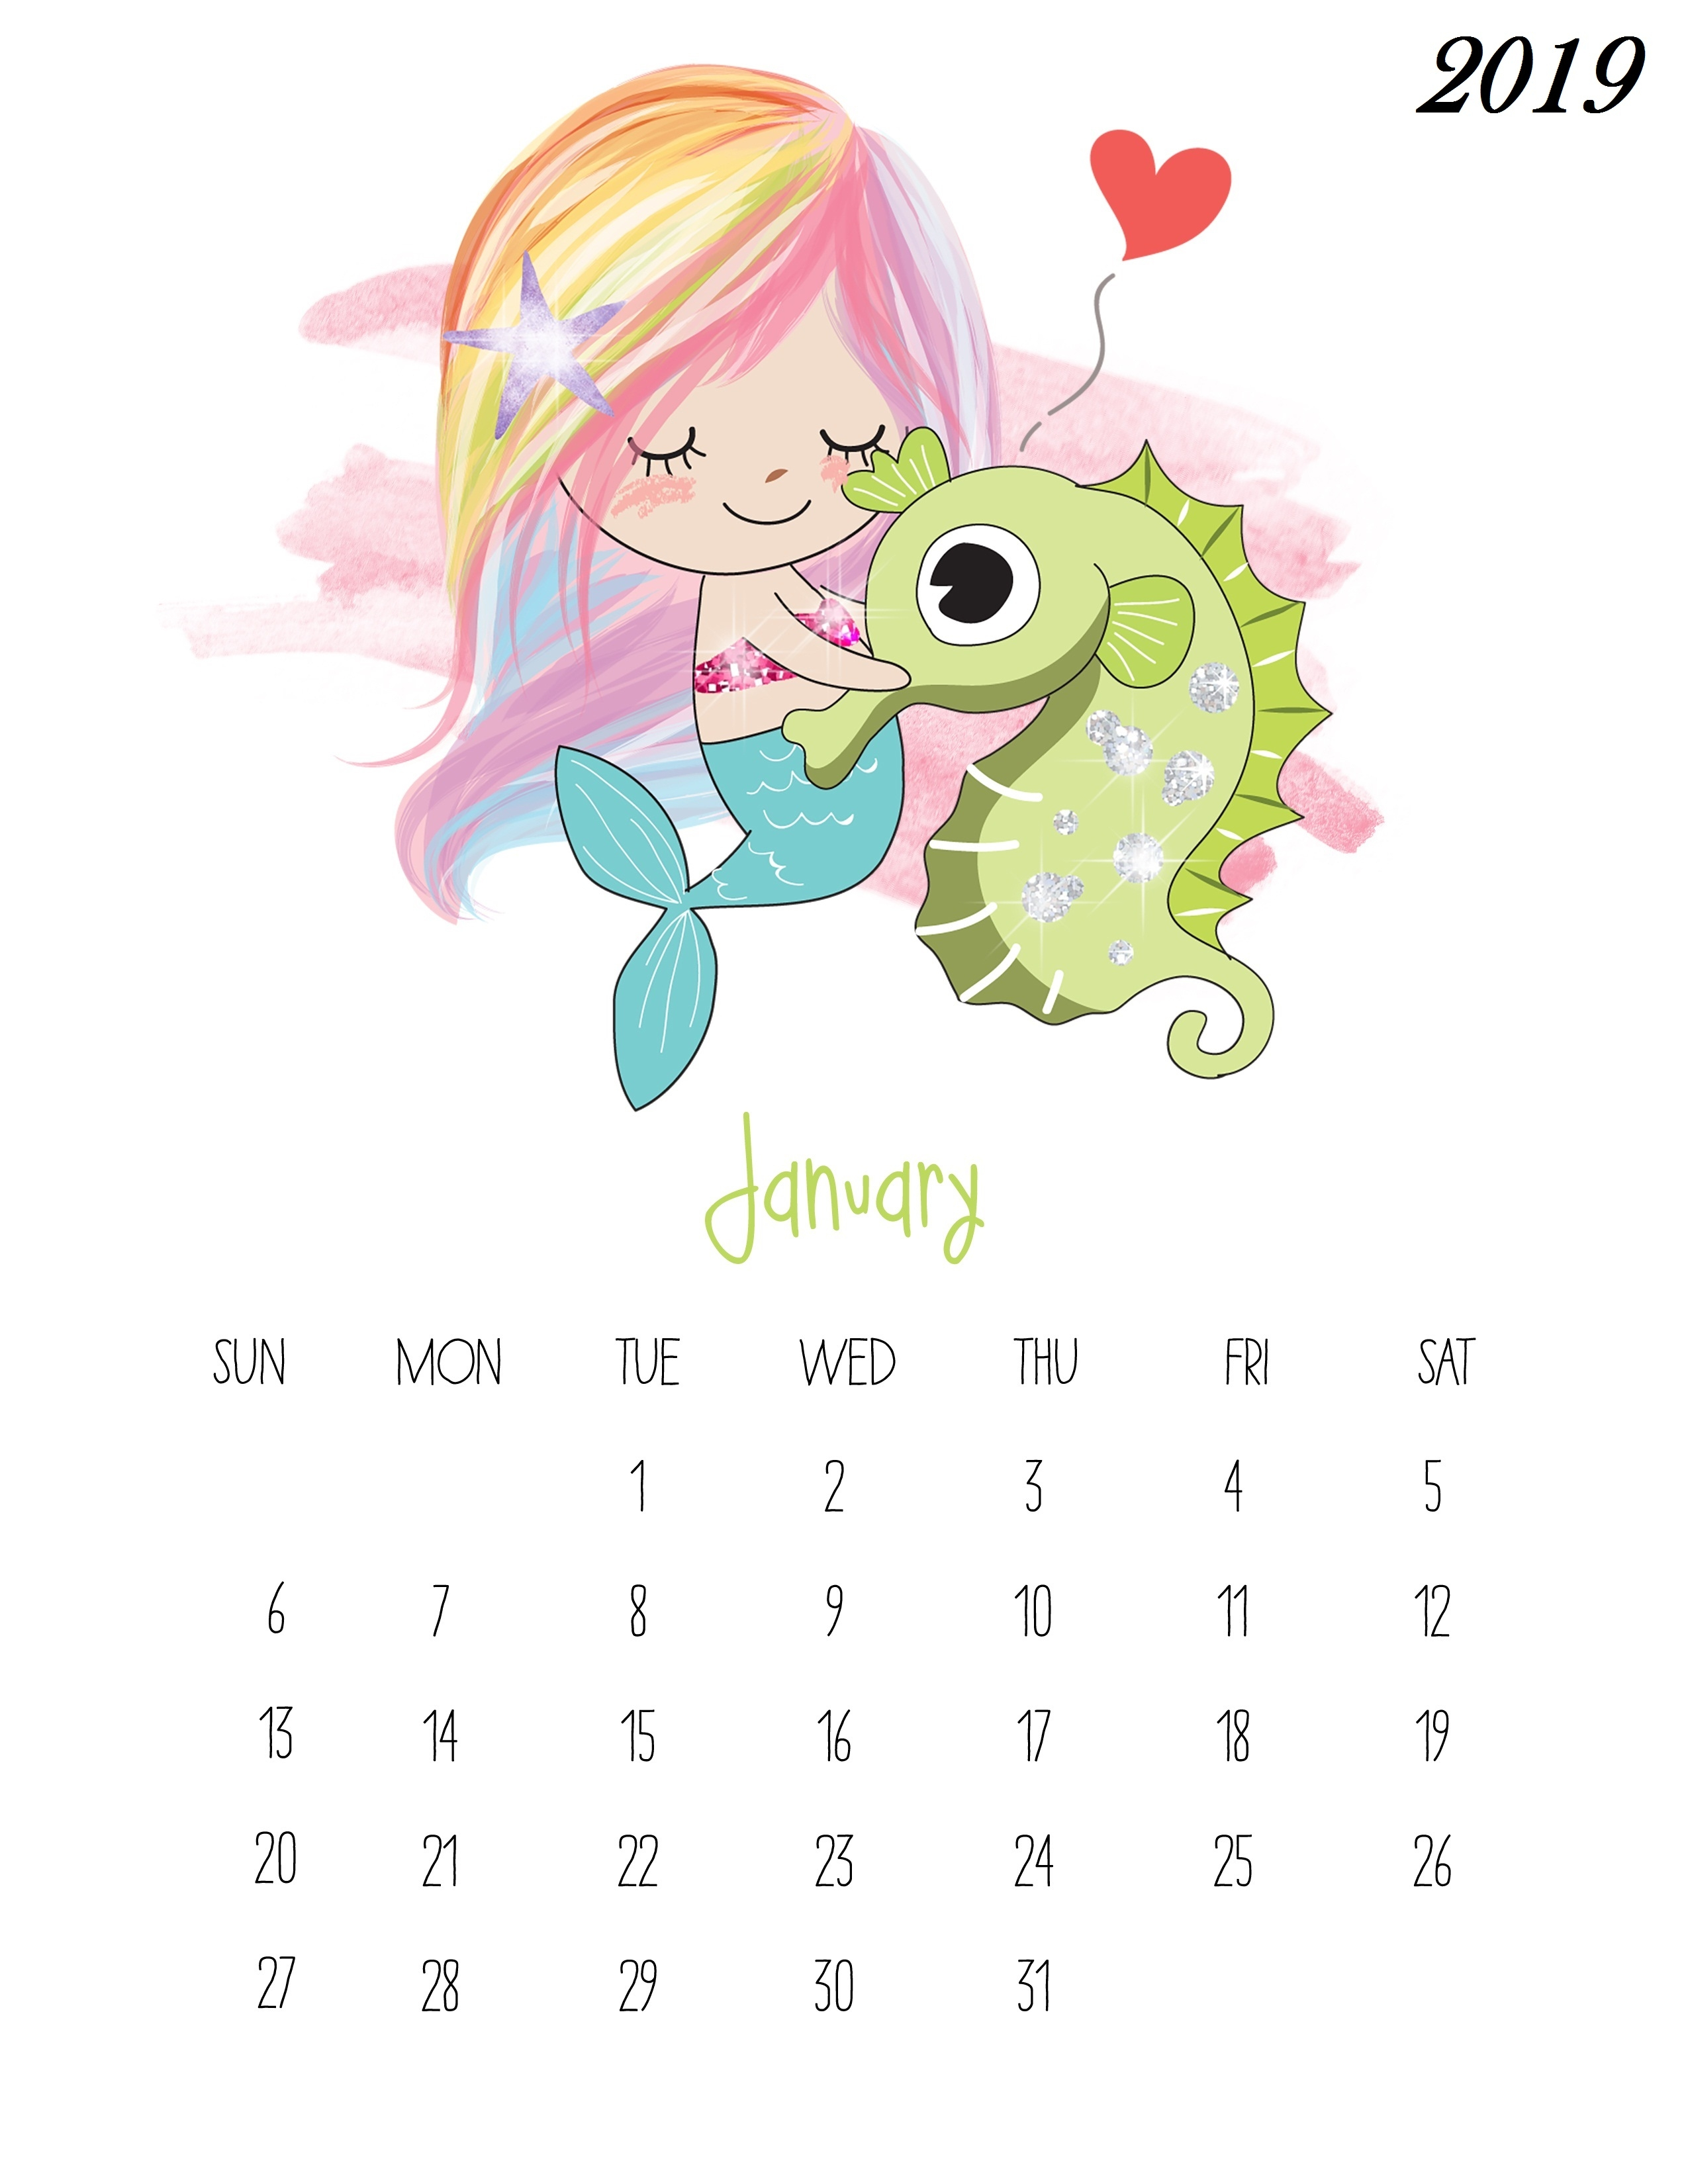 january 2019 printable calendar usa january 2019 calendar templates::January 2019 Calendar Excel